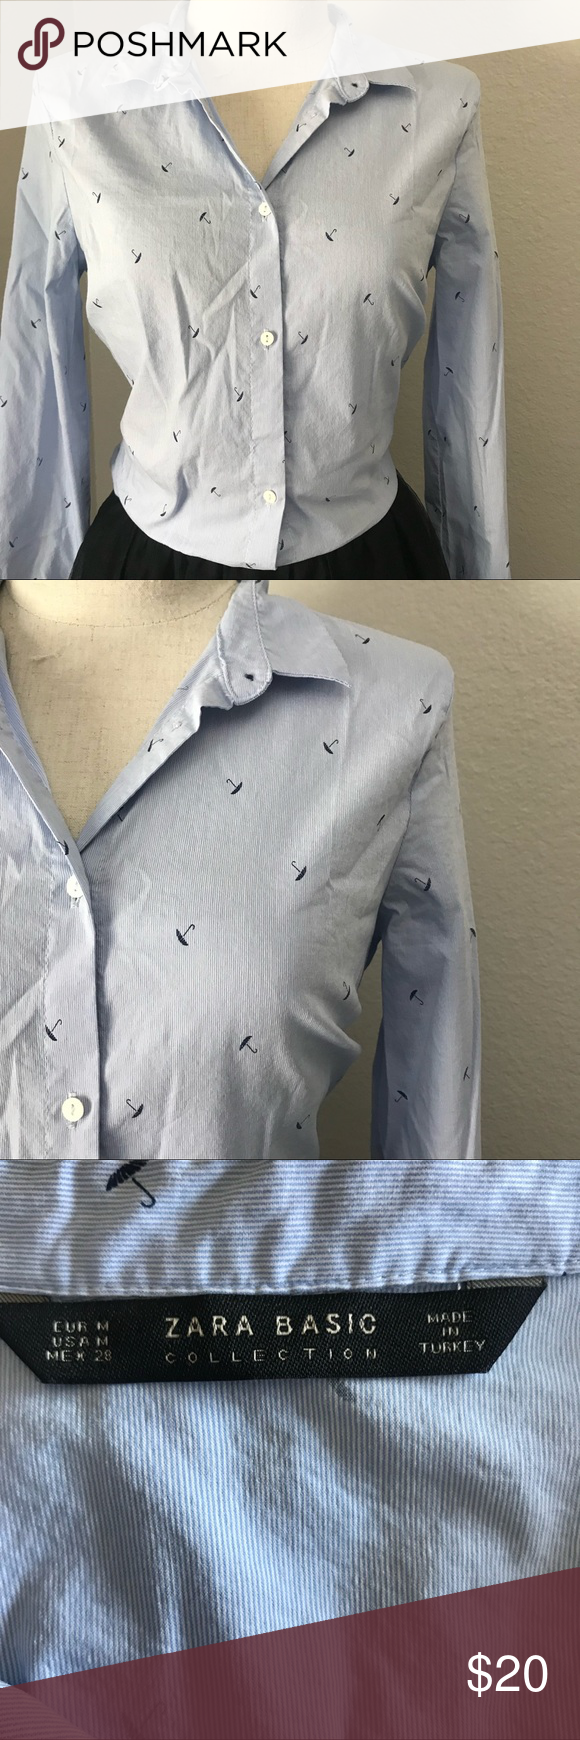 Zara button down long sleeves blouse In excellent used condition  Cute umbrellas all over this shirt that can be dressed up or down. It's also stretchy. Zara Tops Button Down Shirts #cuteumbrellas Zara button down long sleeves blouse In excellent used condition  Cute umbrellas all over this shirt that can be dressed up or down. It's also stretchy. Zara Tops Button Down Shirts #cuteumbrellas Zara button down long sleeves blouse In excellent used condition  Cute umbrellas all over this shirt t #cuteumbrellas